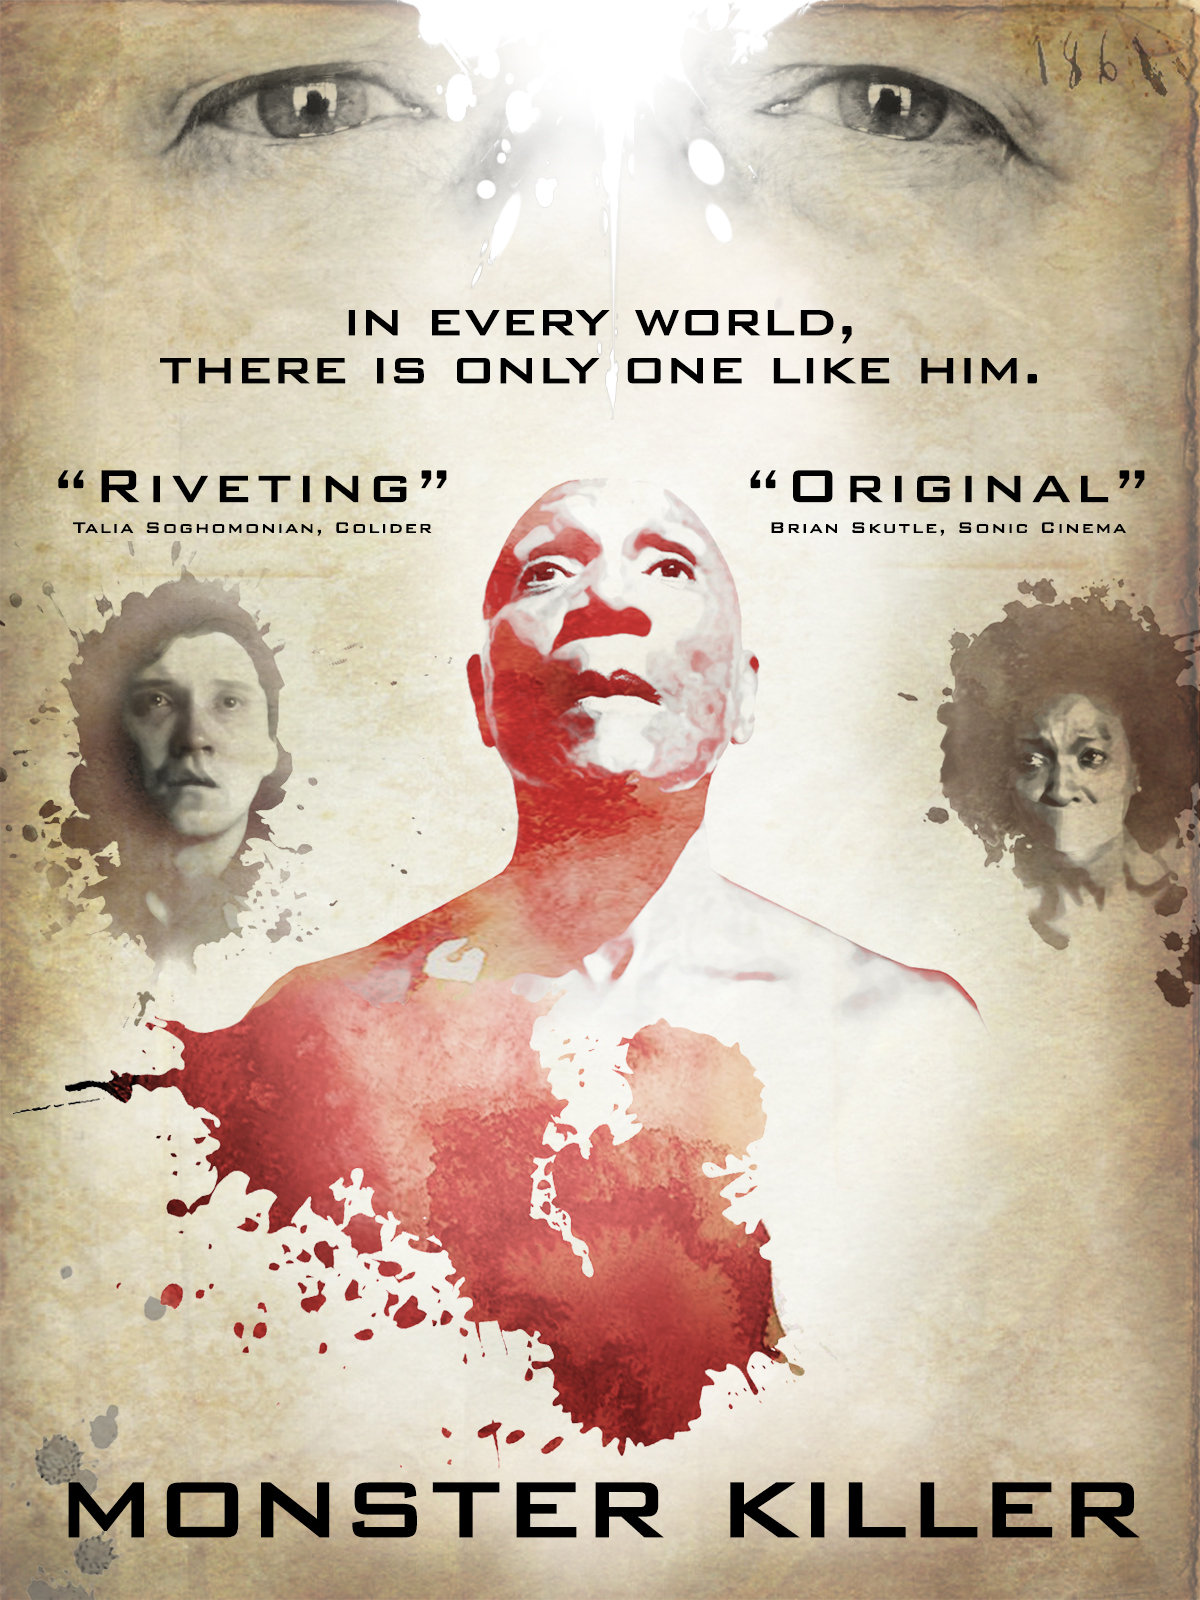 Original photograph by Adriane Hale. Artwork and design by Will Finley.